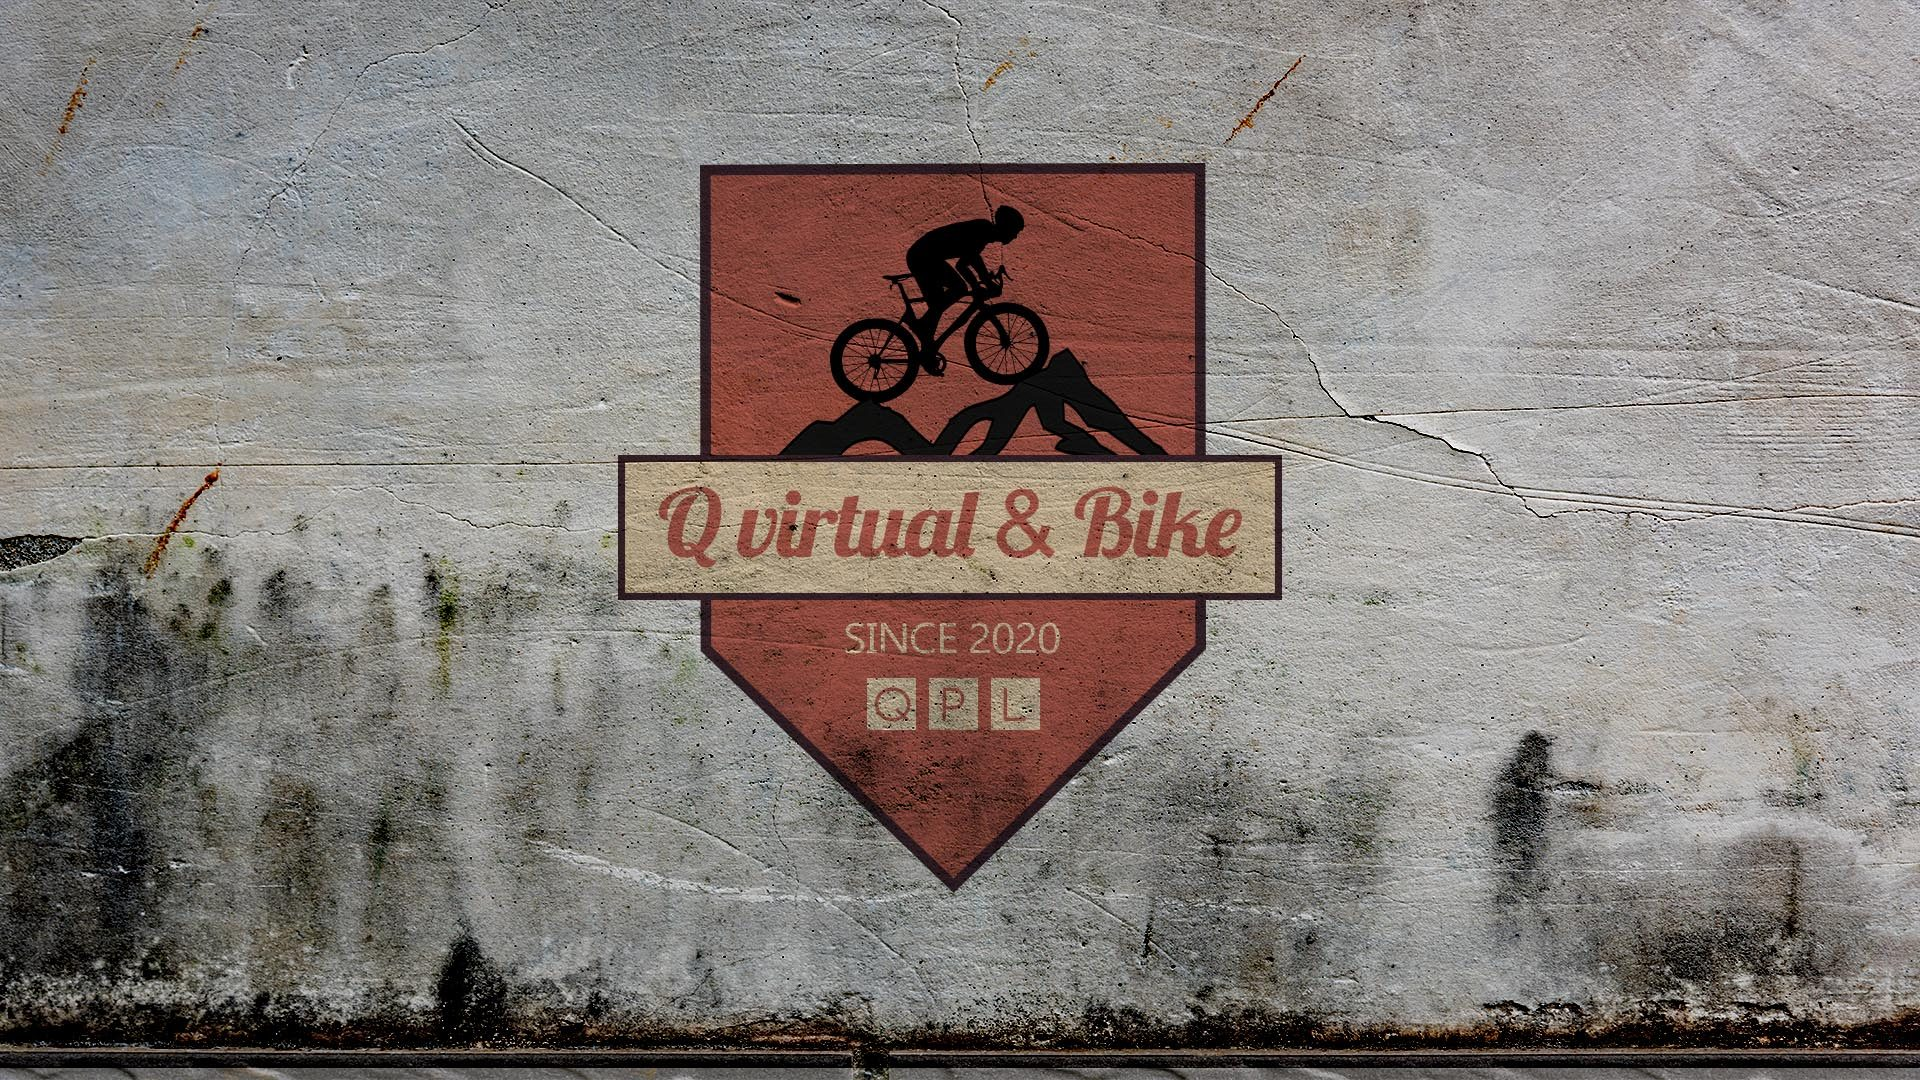 Escudo del club de Q virtual Bike sobre una pared